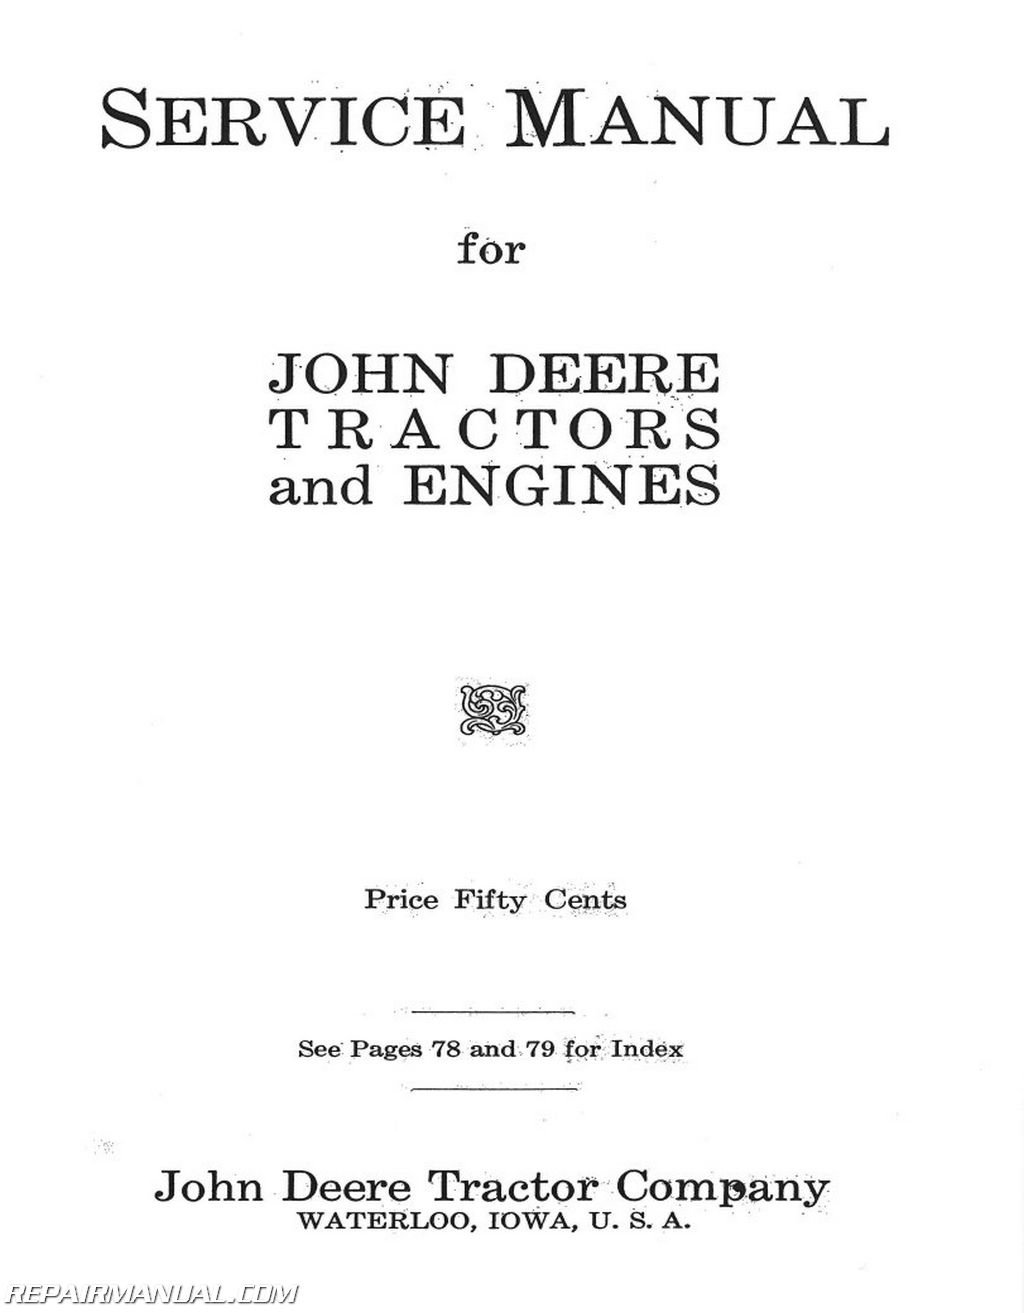 JD-D-GP-REPRO John Deere D GP Unstyled Tractor and Engine Service Manual:  Manufacturer: Amazon.com: Books